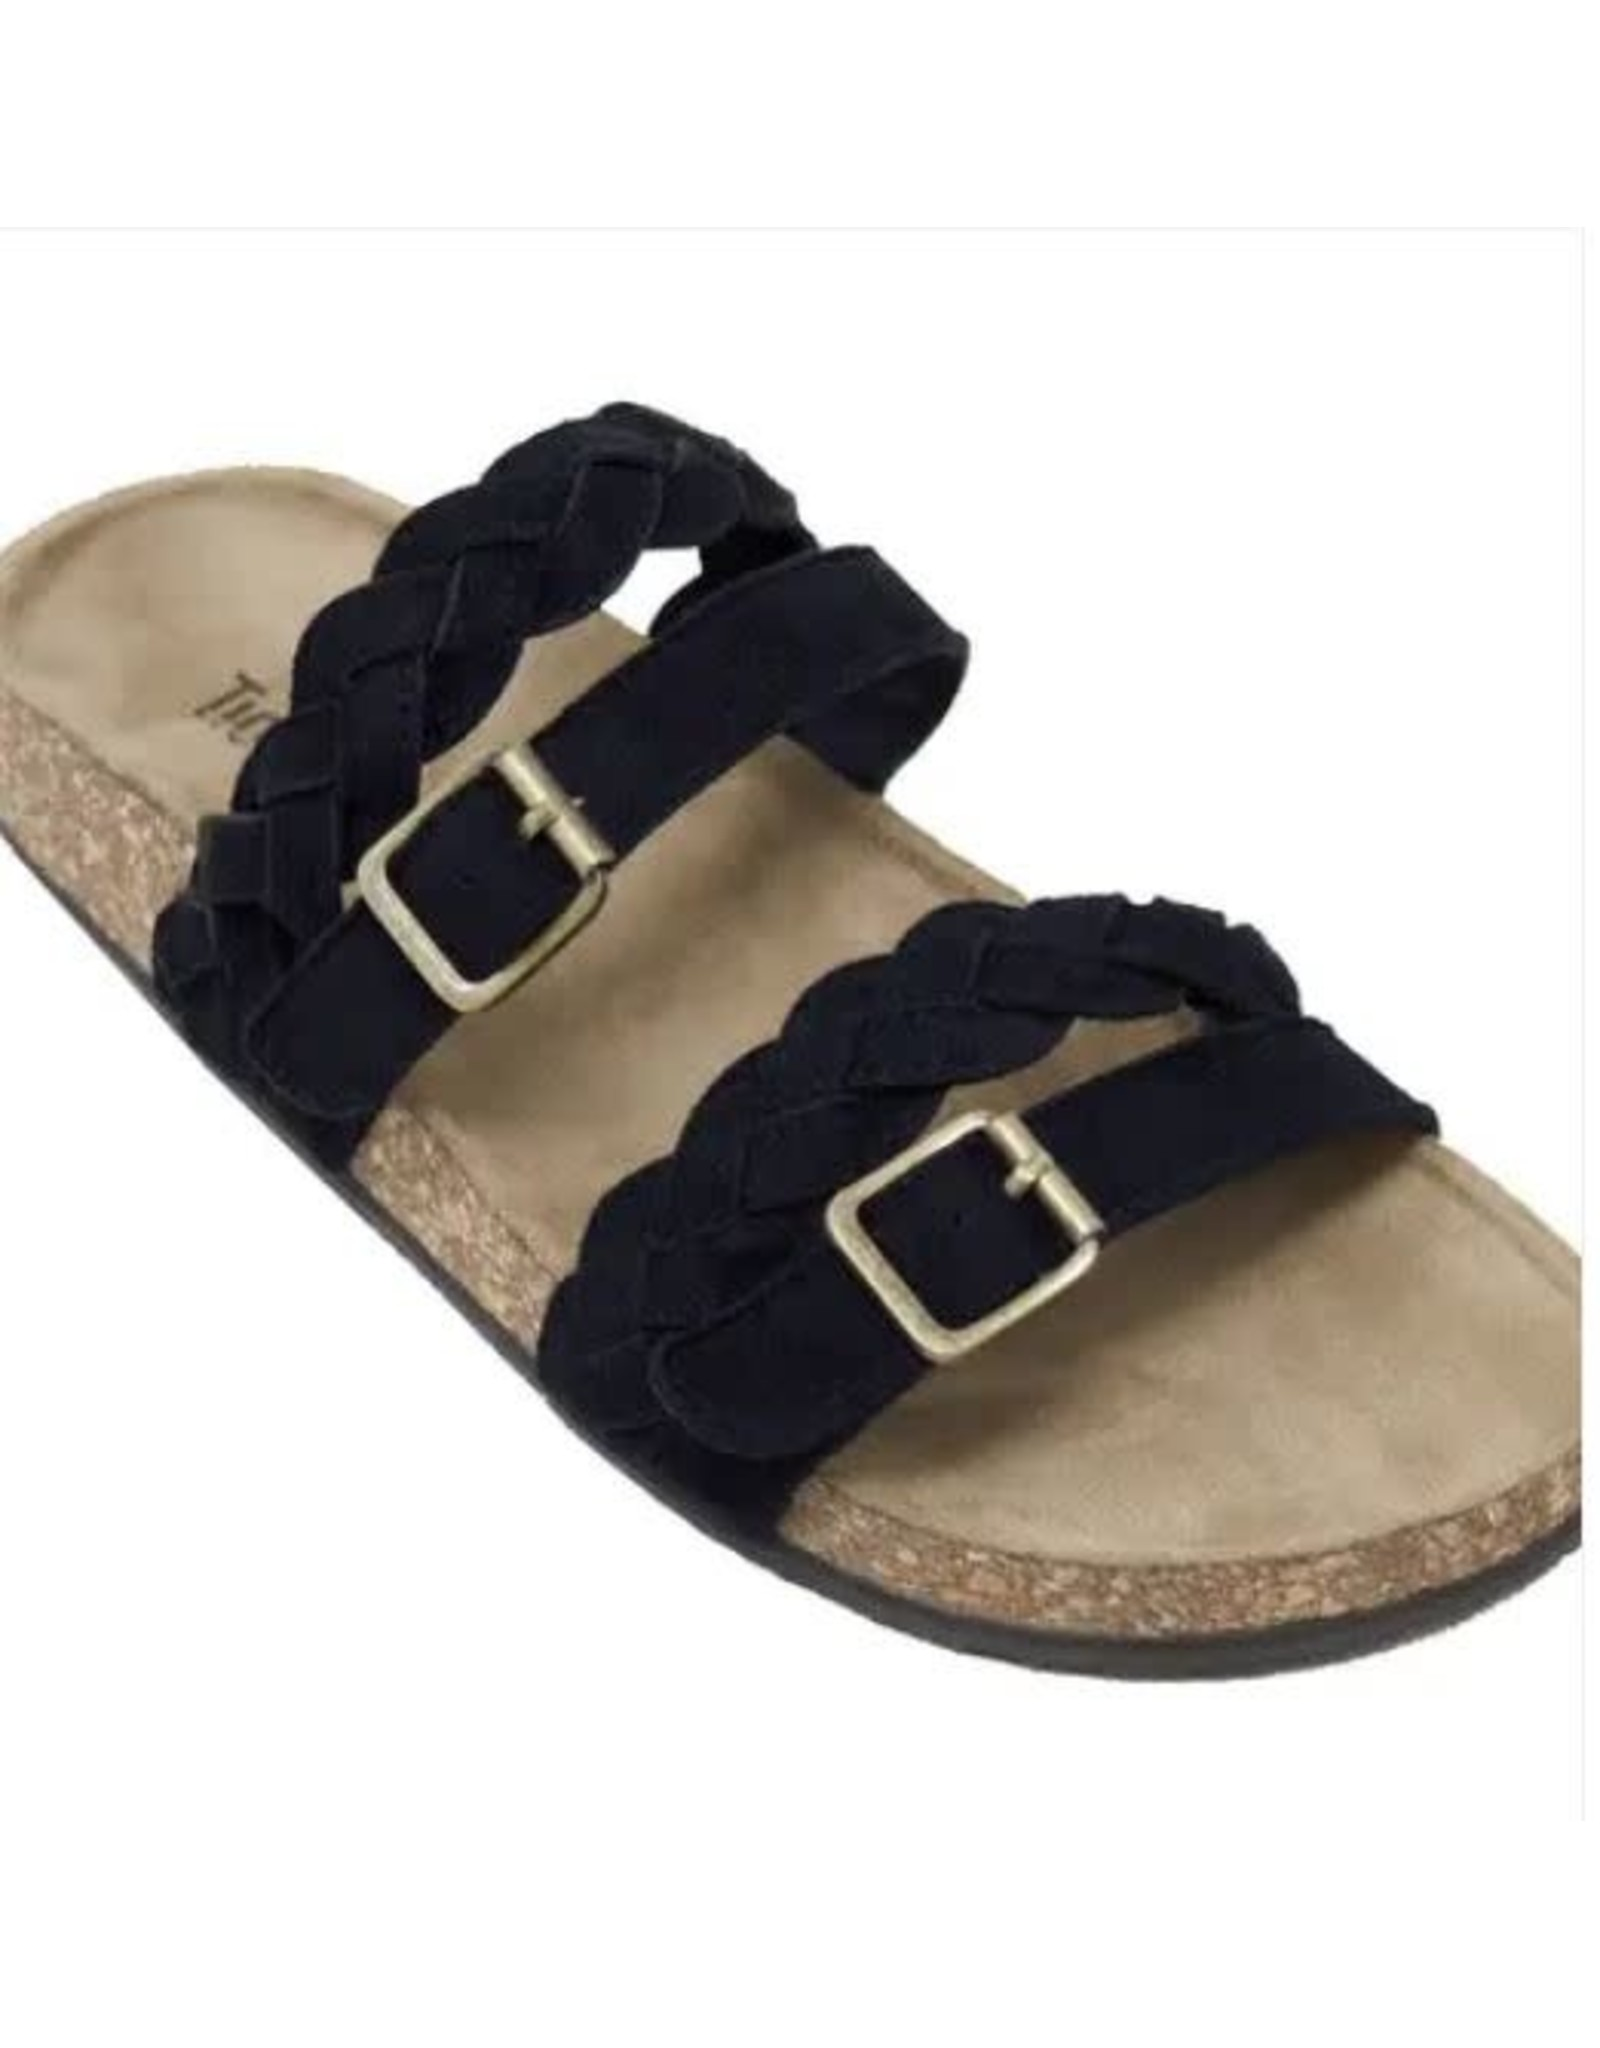 BLACK SANDBRIDGE BRAIDED STRAP SANDAL WITH BUCKLES